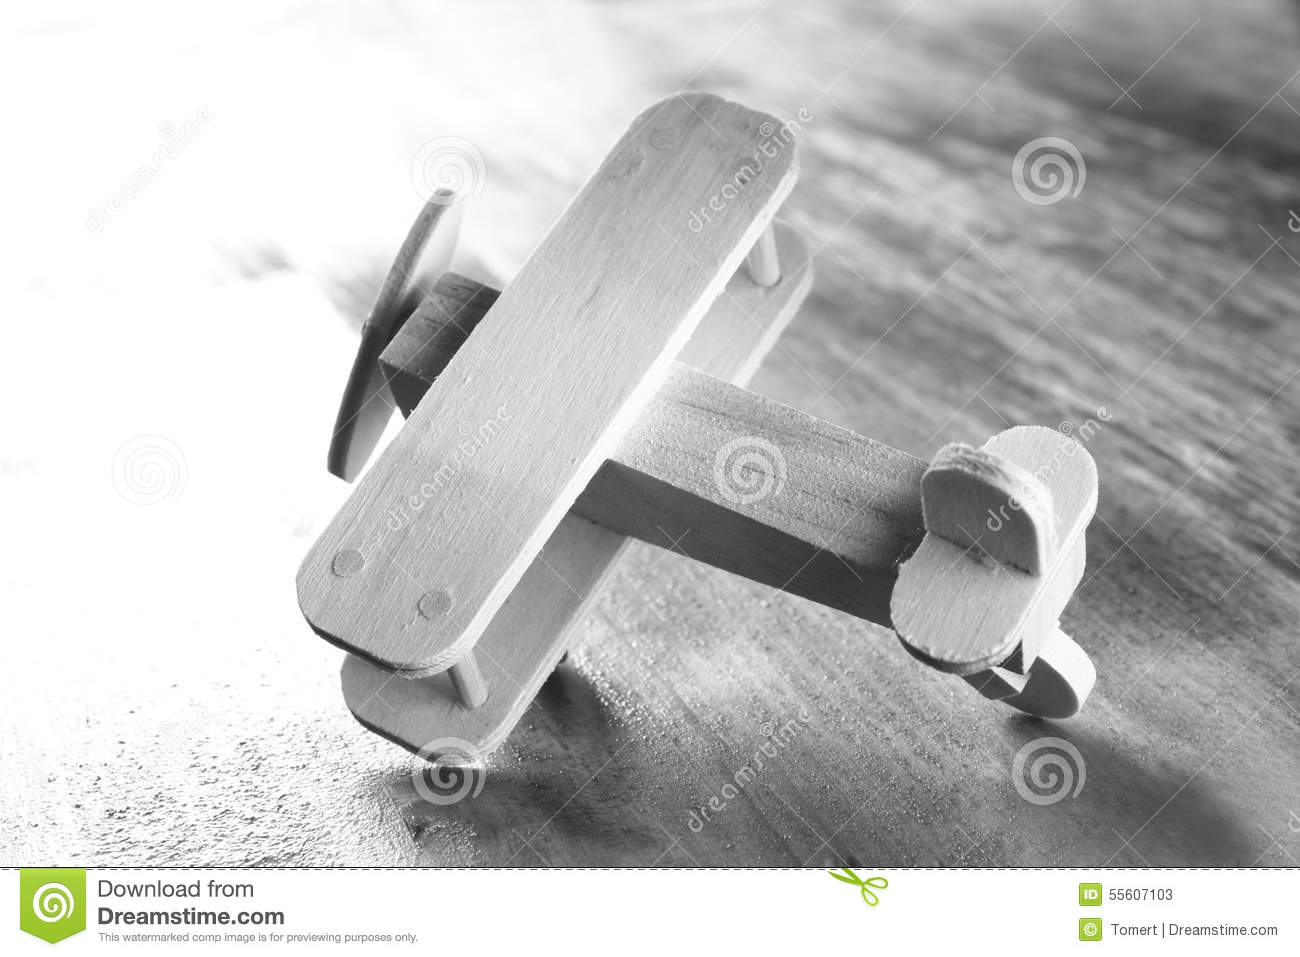 Wooden airplane toy over textured wooden background. retro style image. black and white old style photo